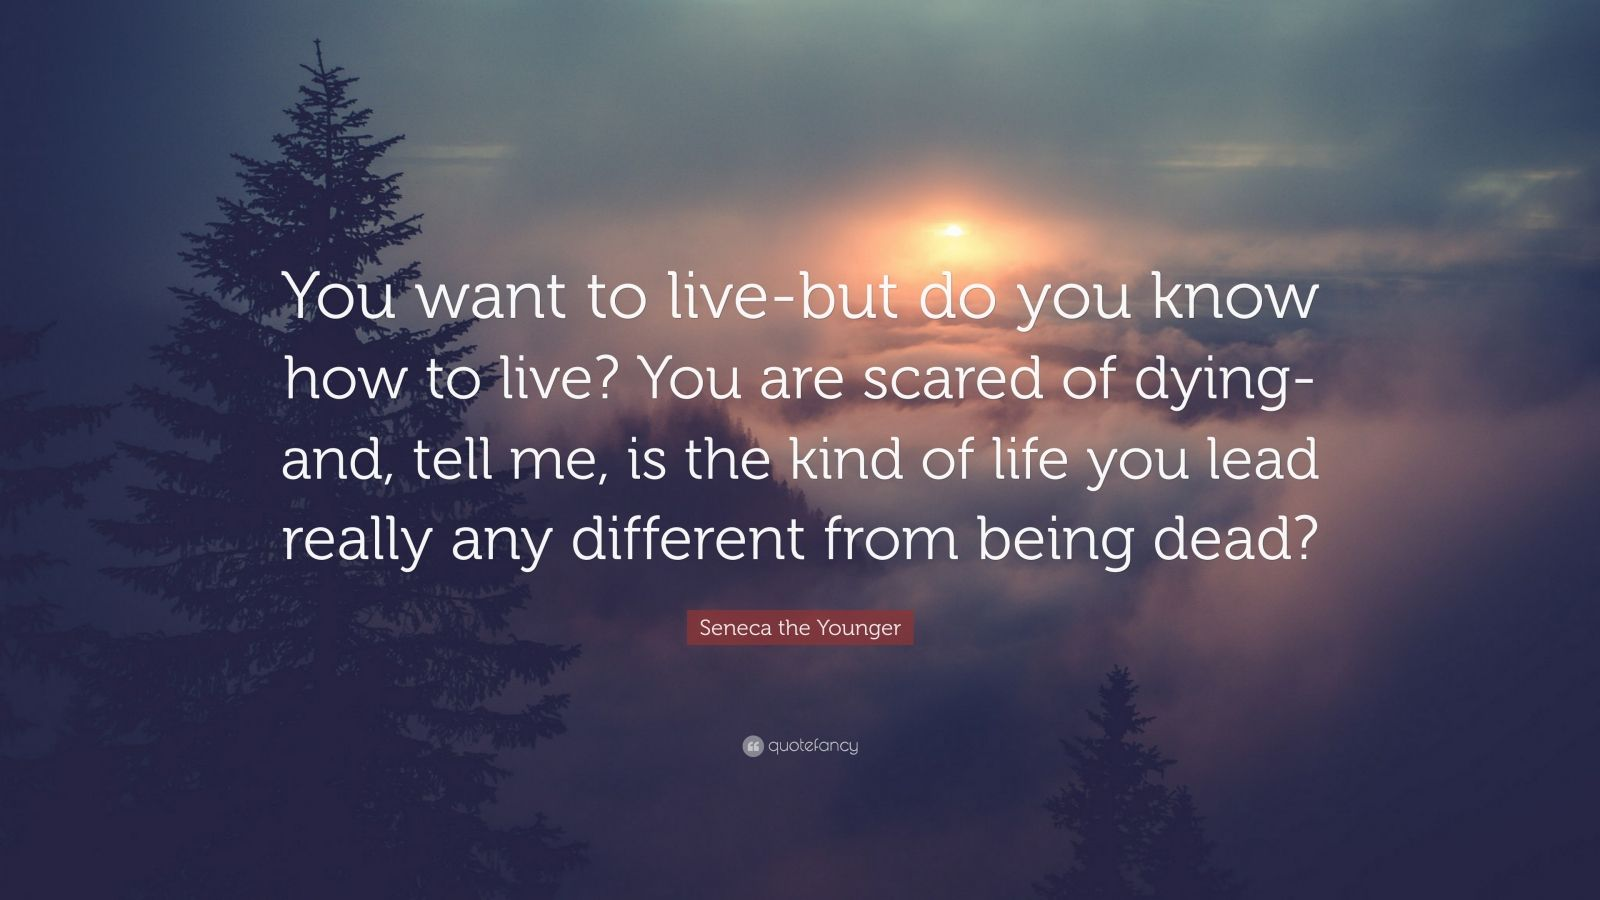 "Seneca the Younger Quote: ""You want to live-but do you know how to live? You are scared of dying-and, tell me, is the kind of life you lead really any different from being dead?"""